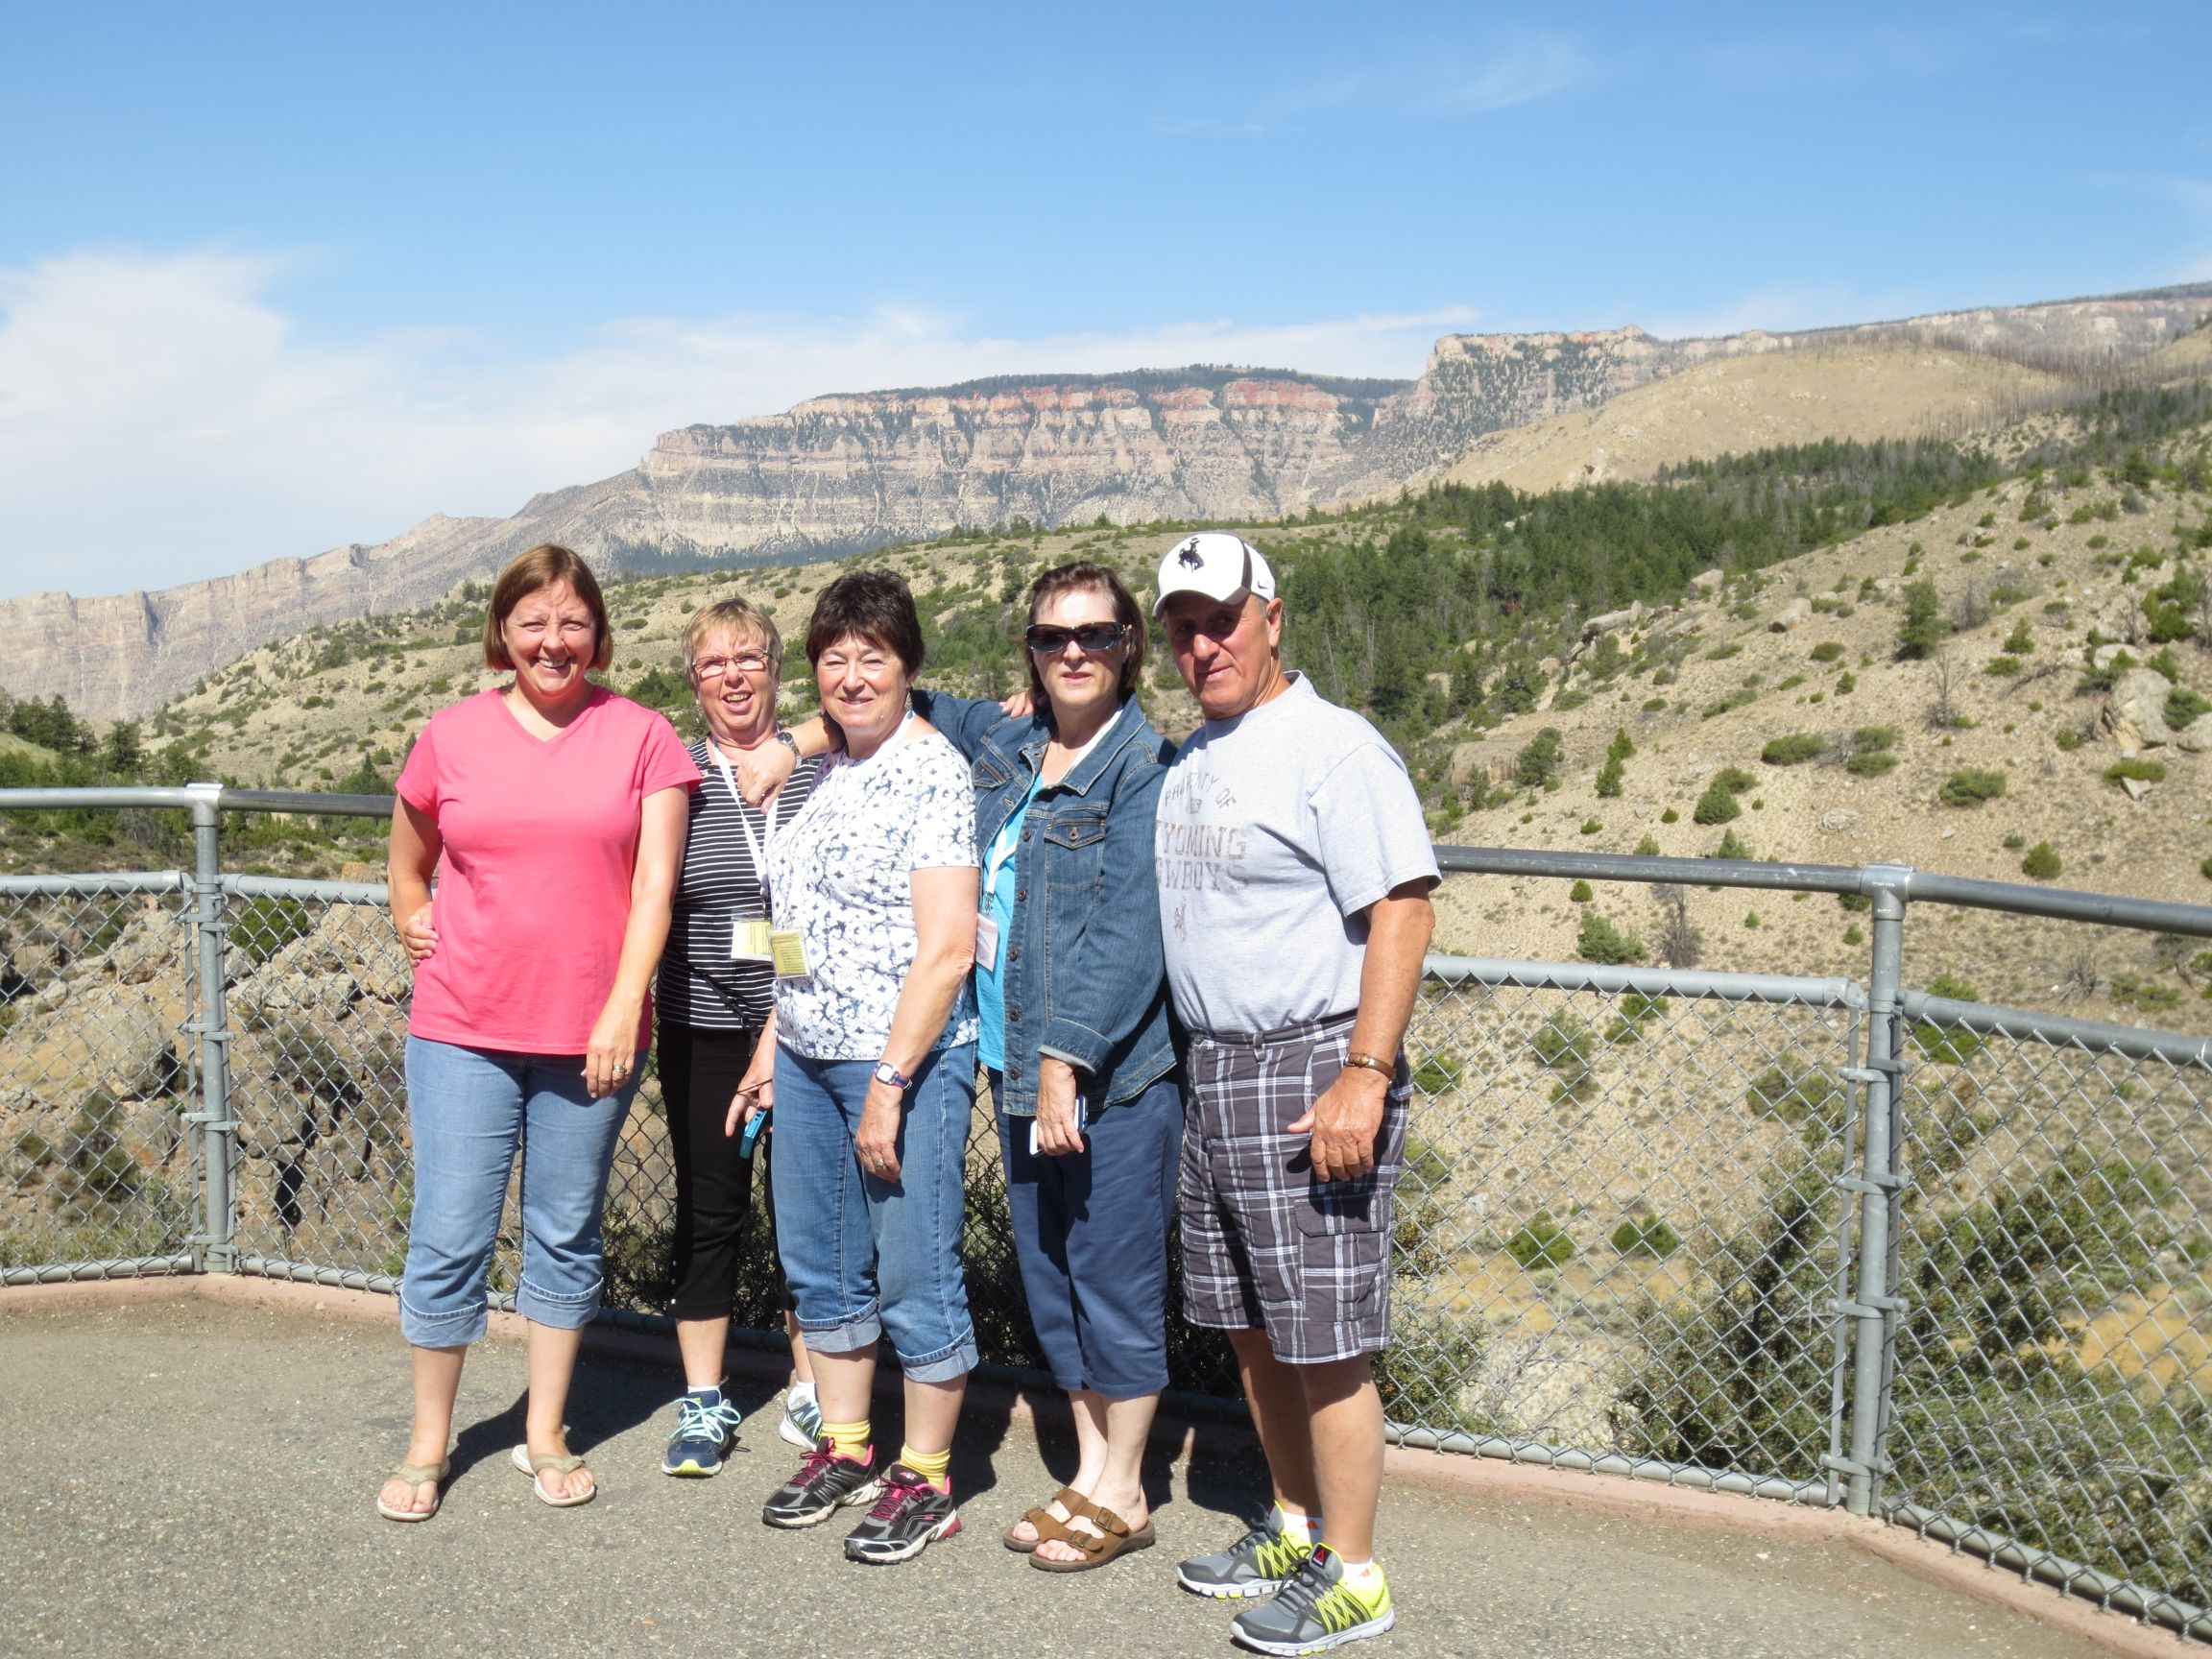 Our travelers enjoy a scenic view while on our Western Parks tour August 2016